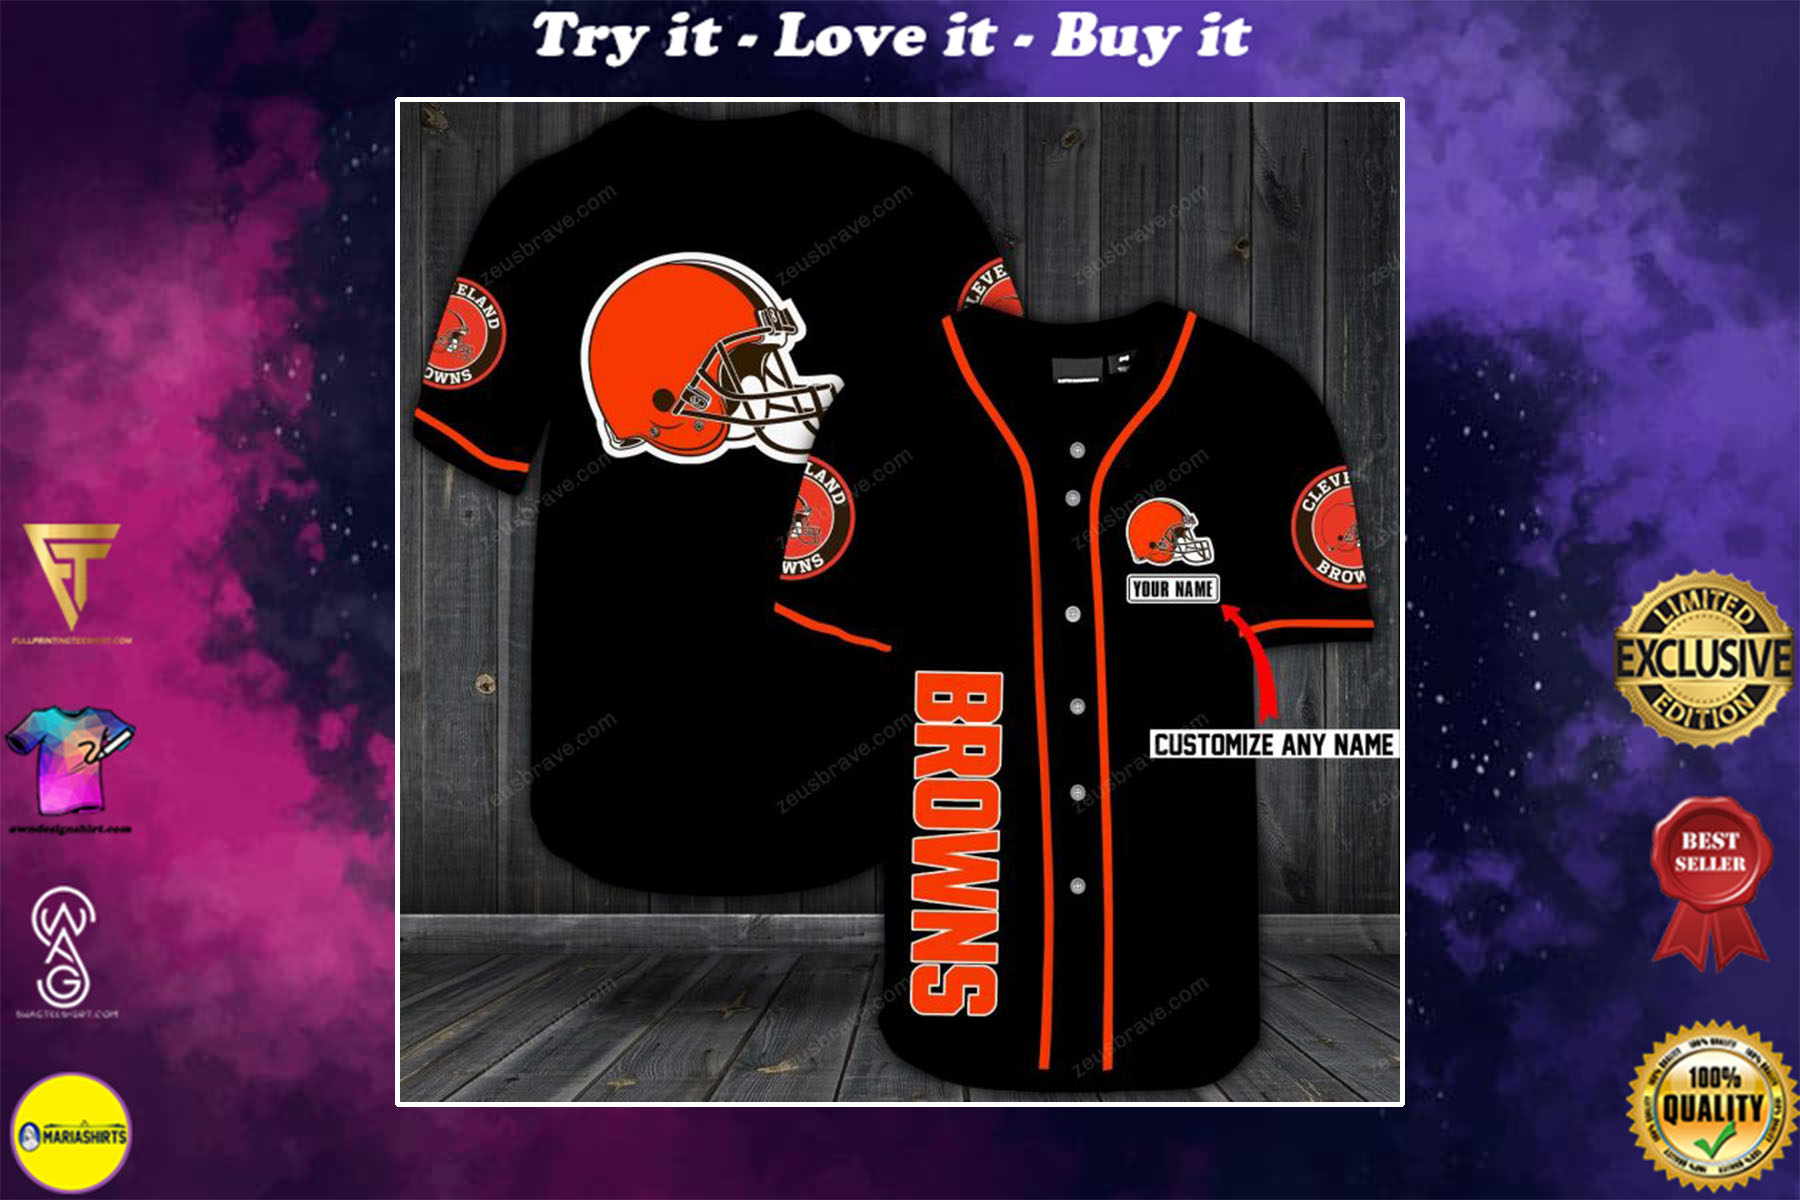 [special edition] custom name jersey cleveland browns shirt - maria